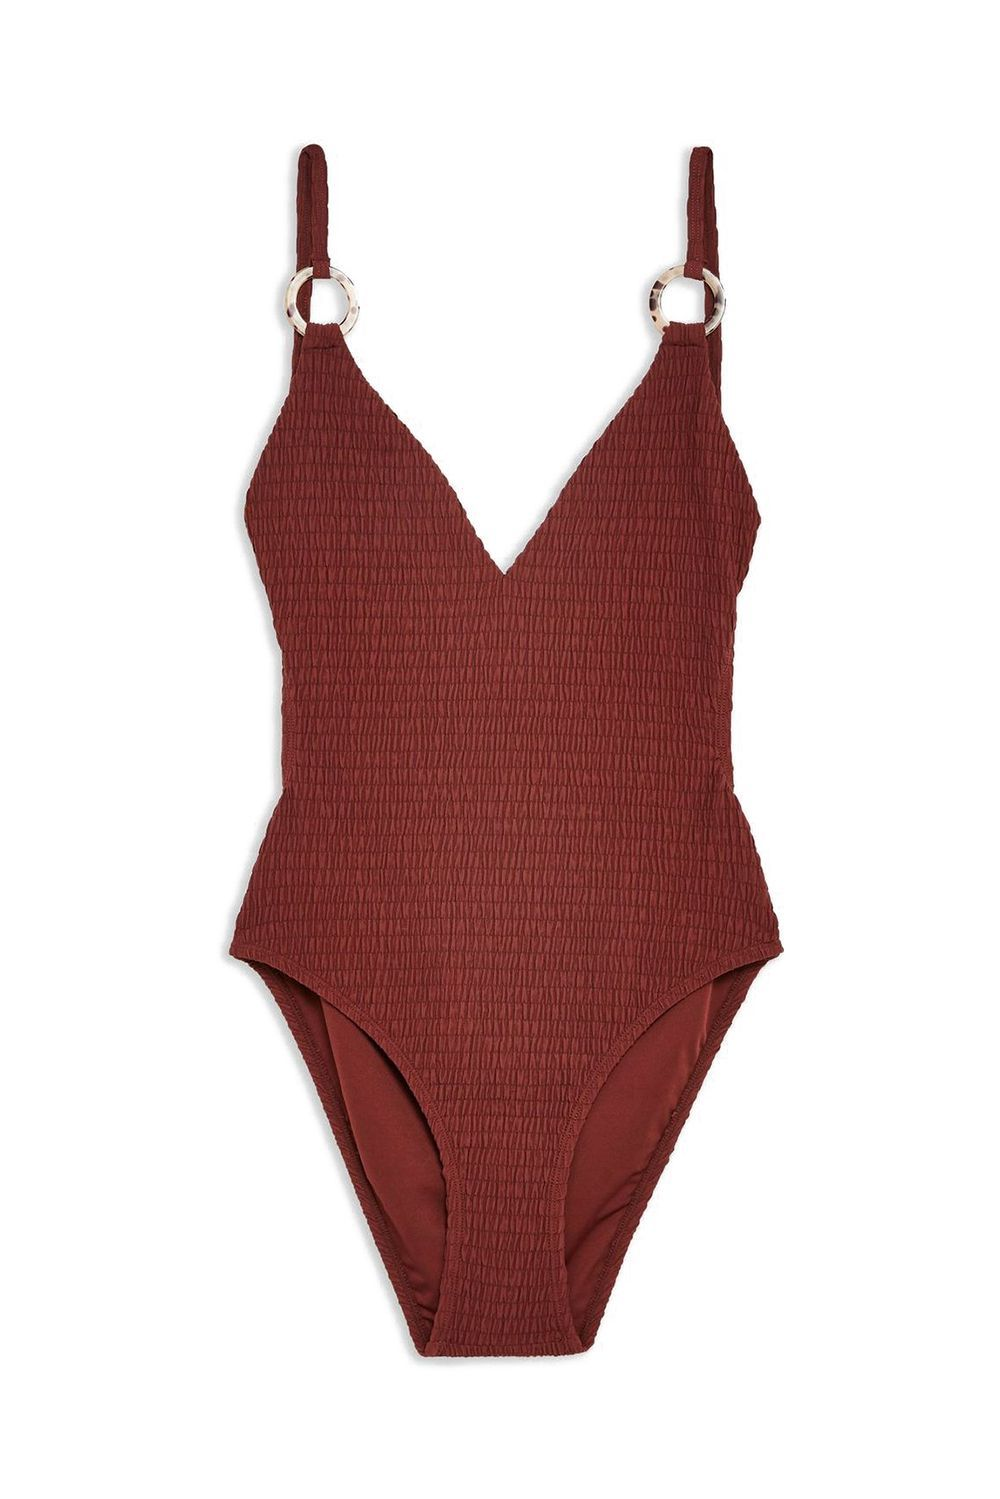 c4880f8339 19 Best One Piece Swimsuits for Women - One Piece Bathing Suits Summer 2019